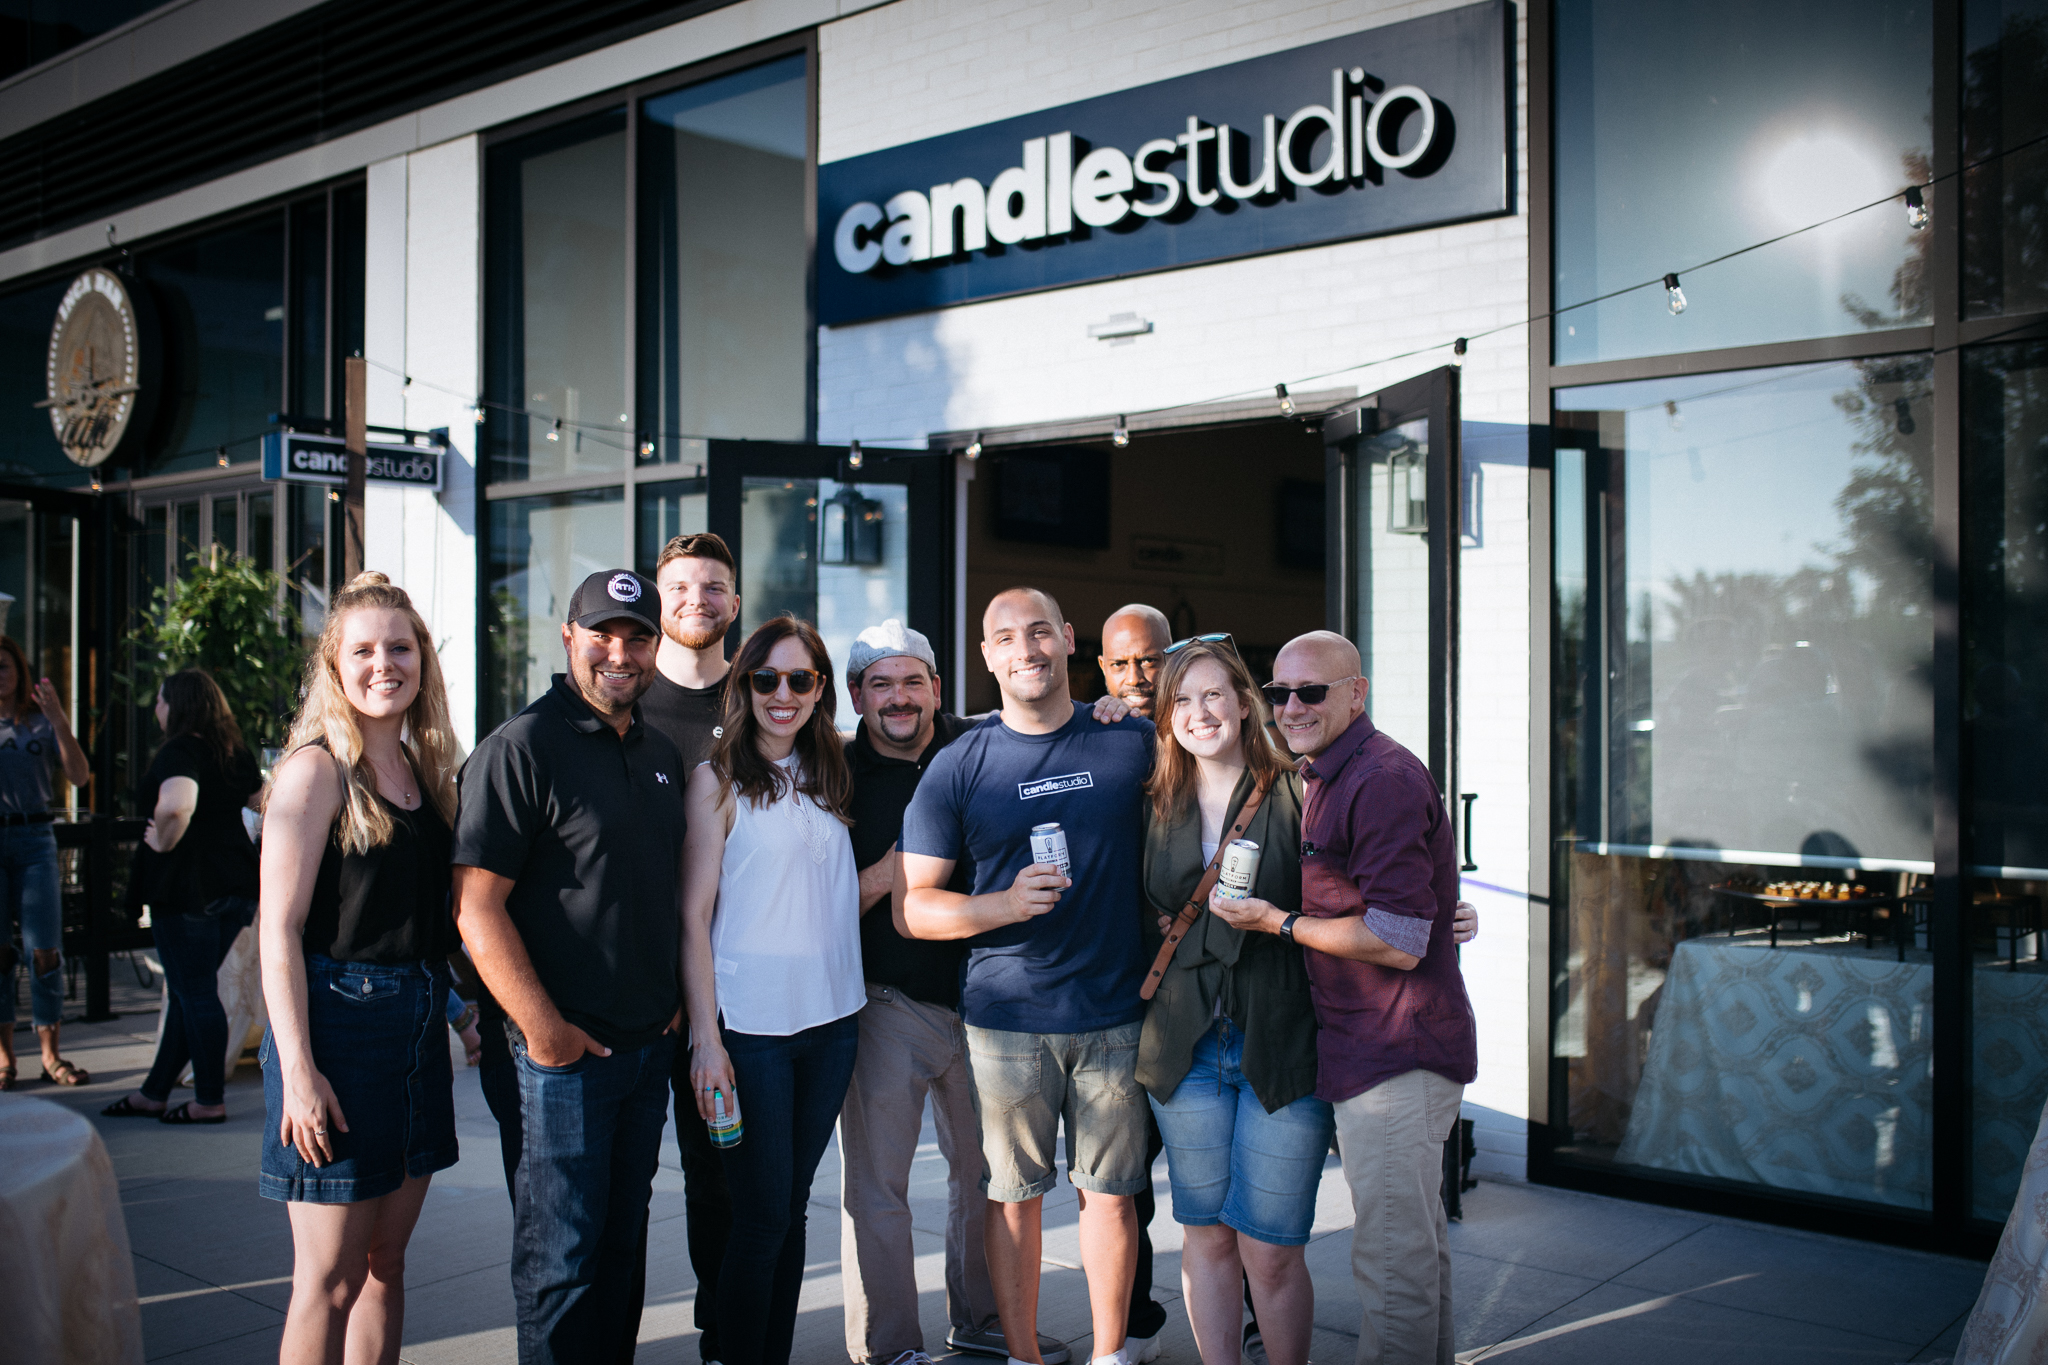 Mwypasek_Thurs_Therapy_The Candle Store_353_20190711_MWP_2180.jpg